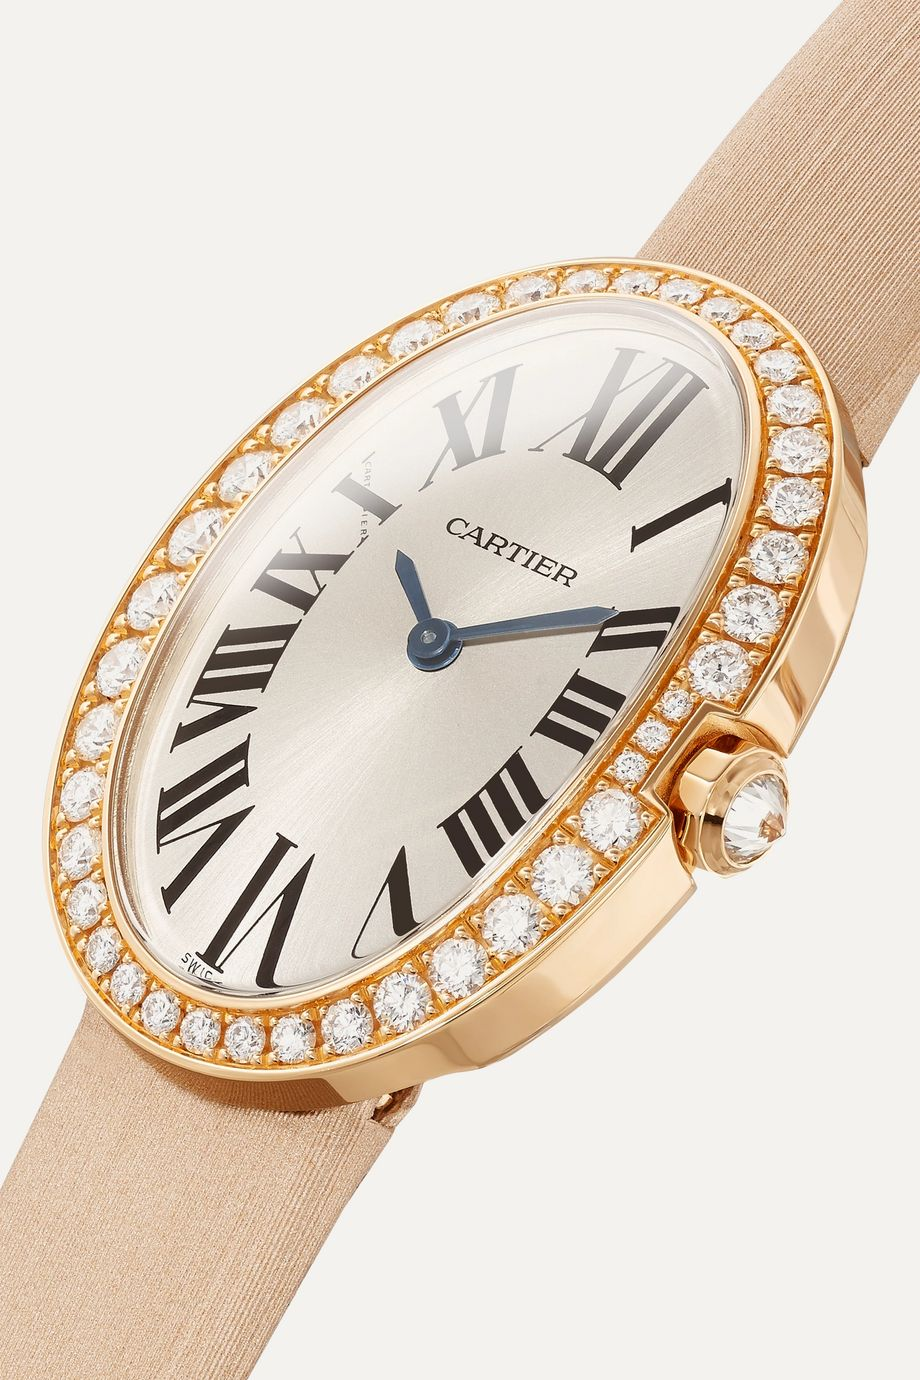 Cartier Baignoire 24.5mm small 18-karat pink gold, toile brossée and diamond watch